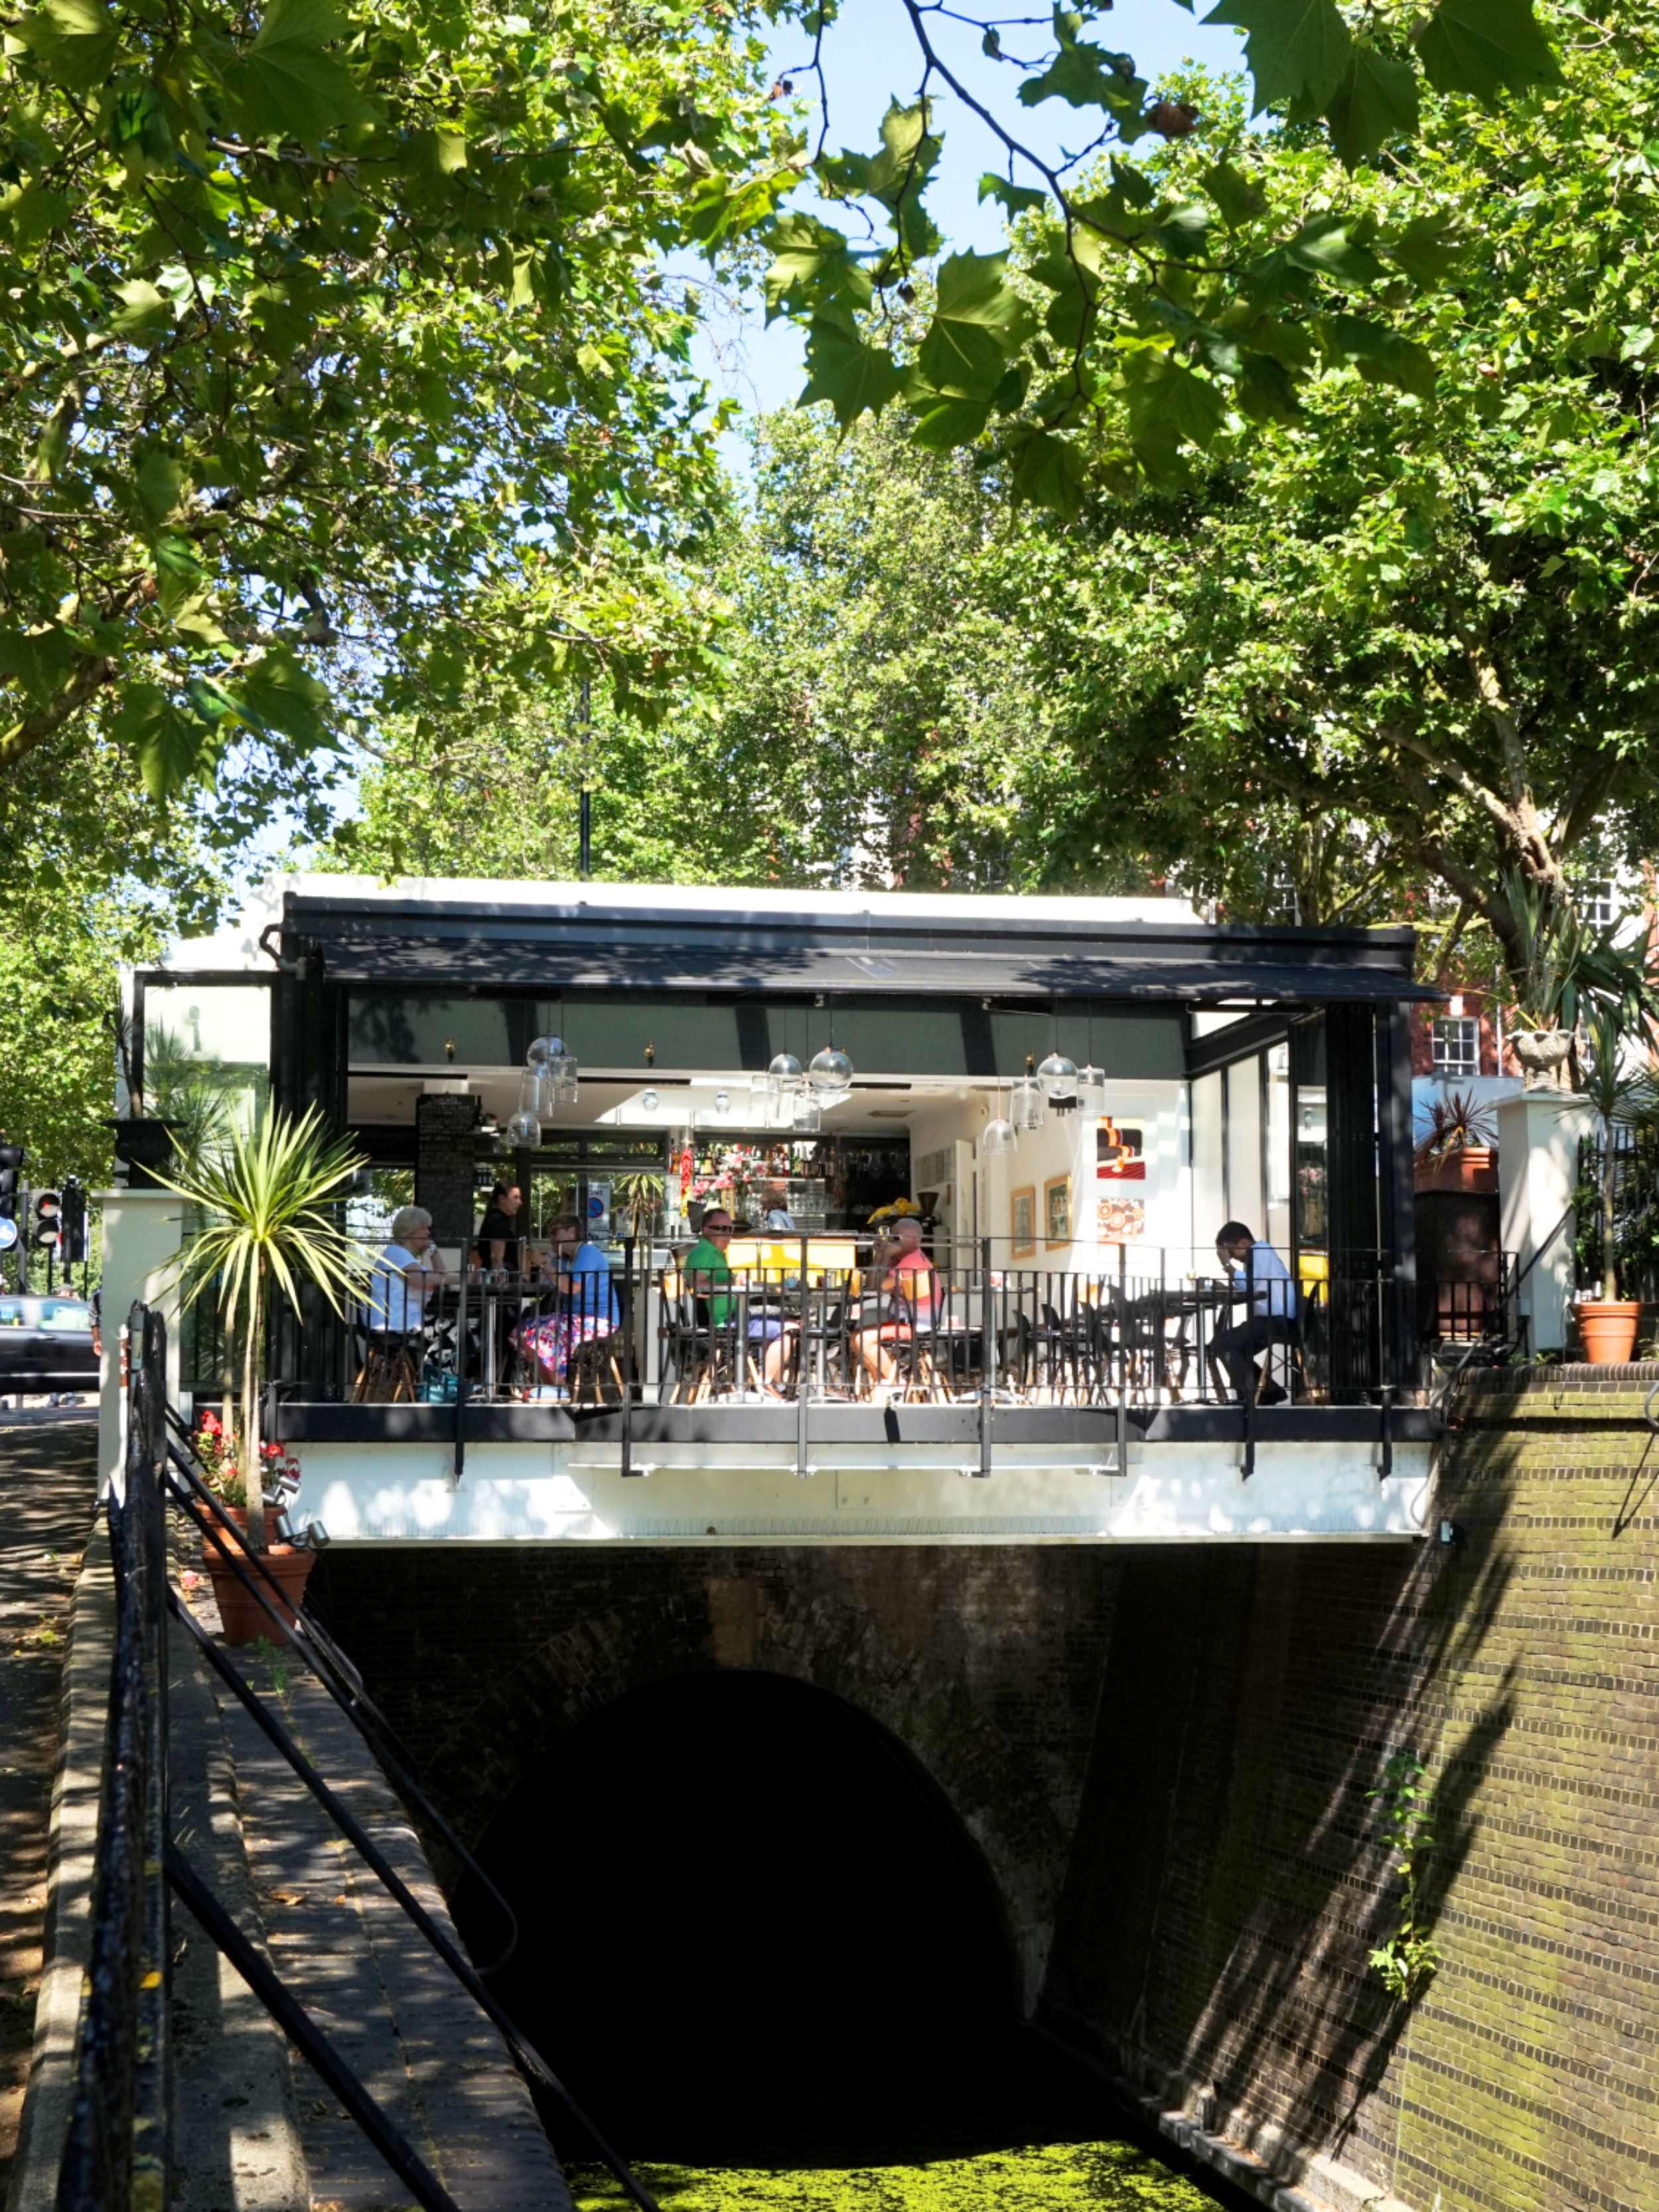 Regents-Canal-30